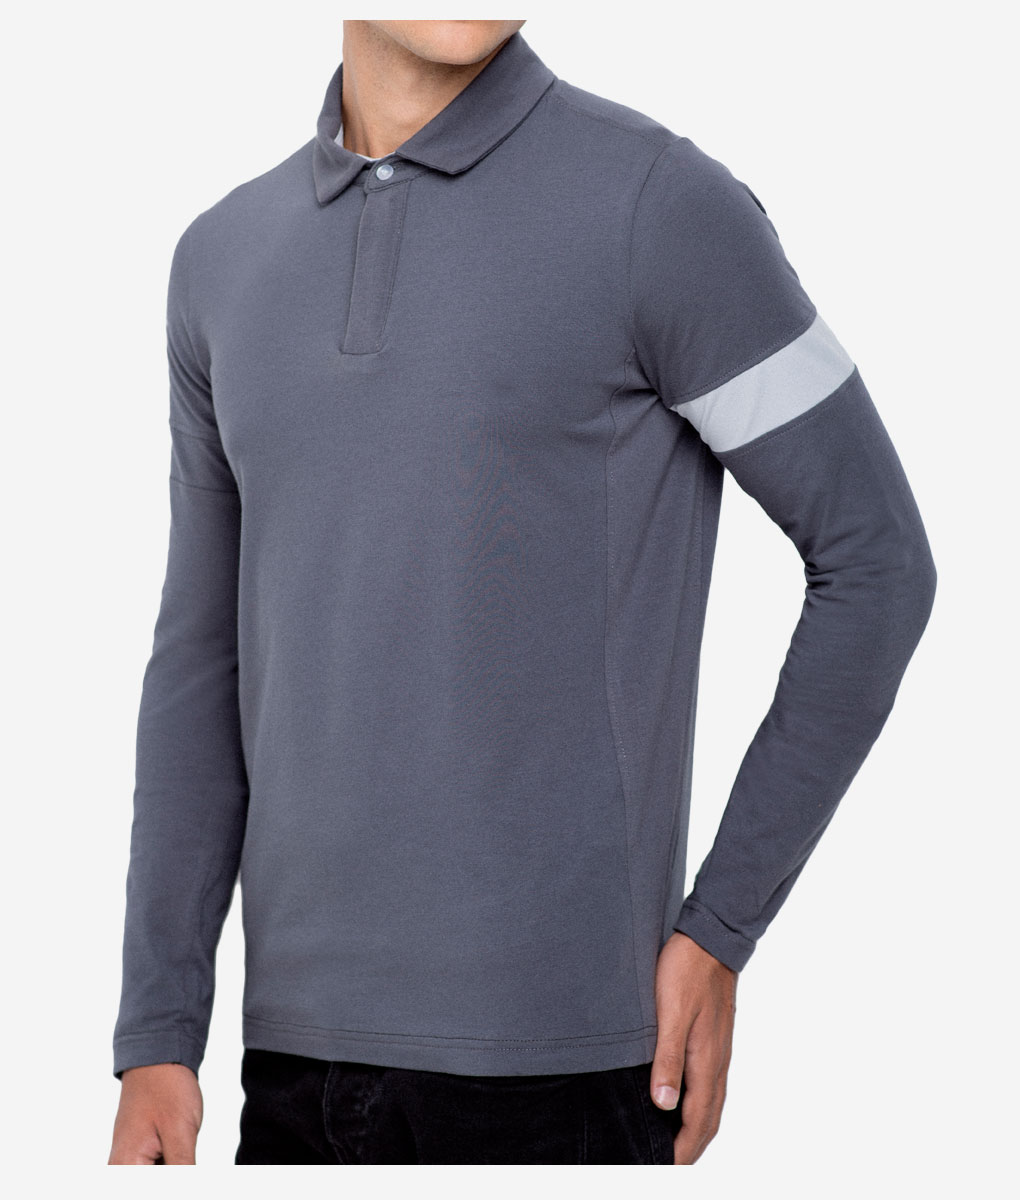 casual-cycling-clothing-polo-zip-grey-3-4